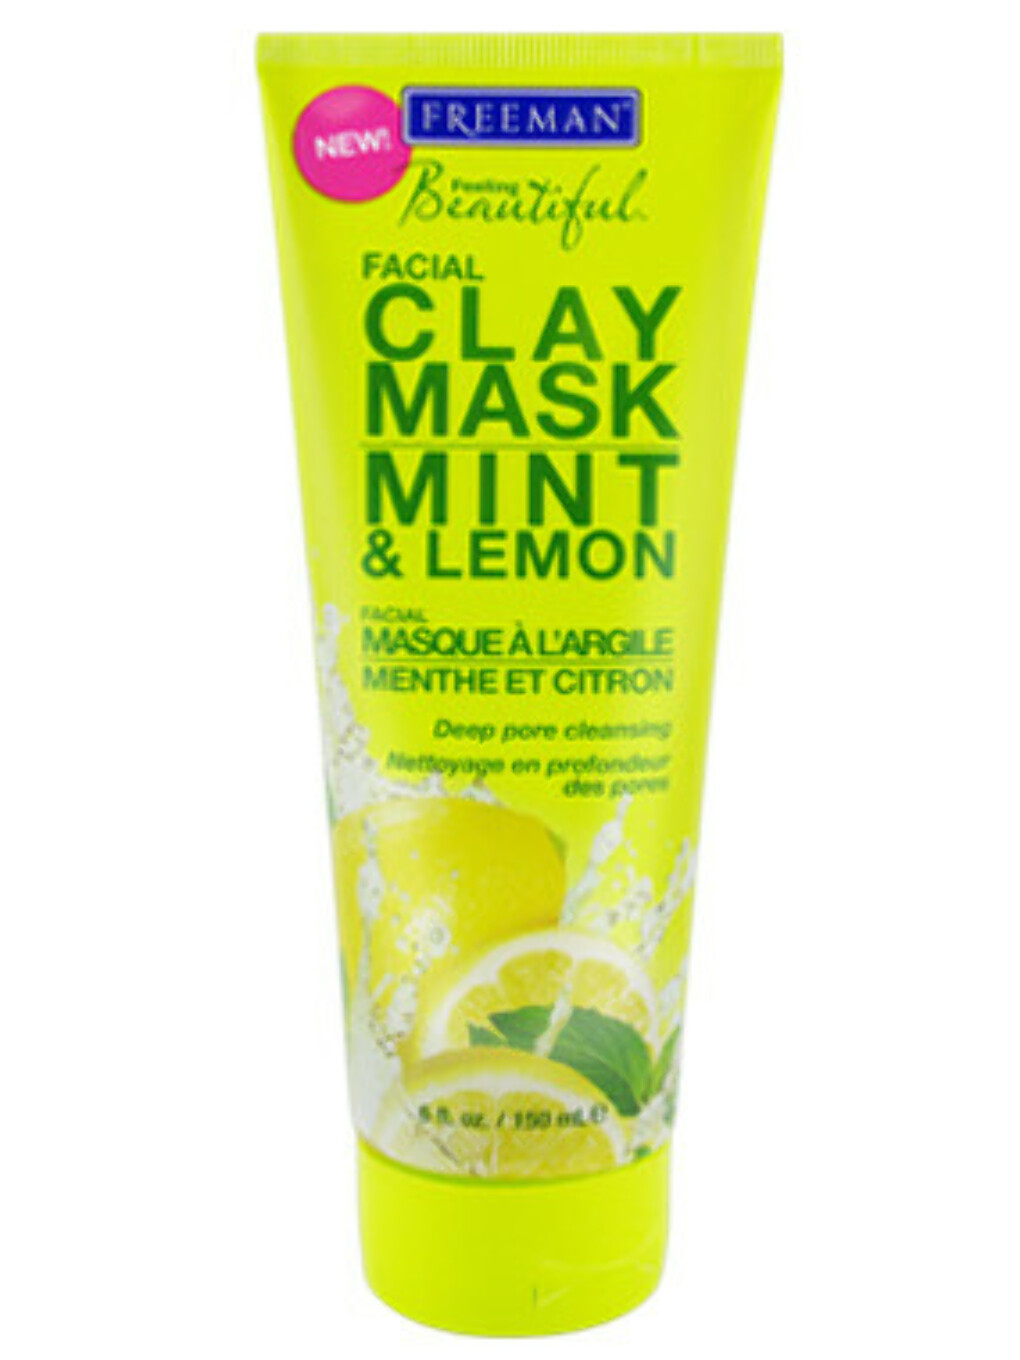 Freeman Mint & Lemon Facial Clay Mask